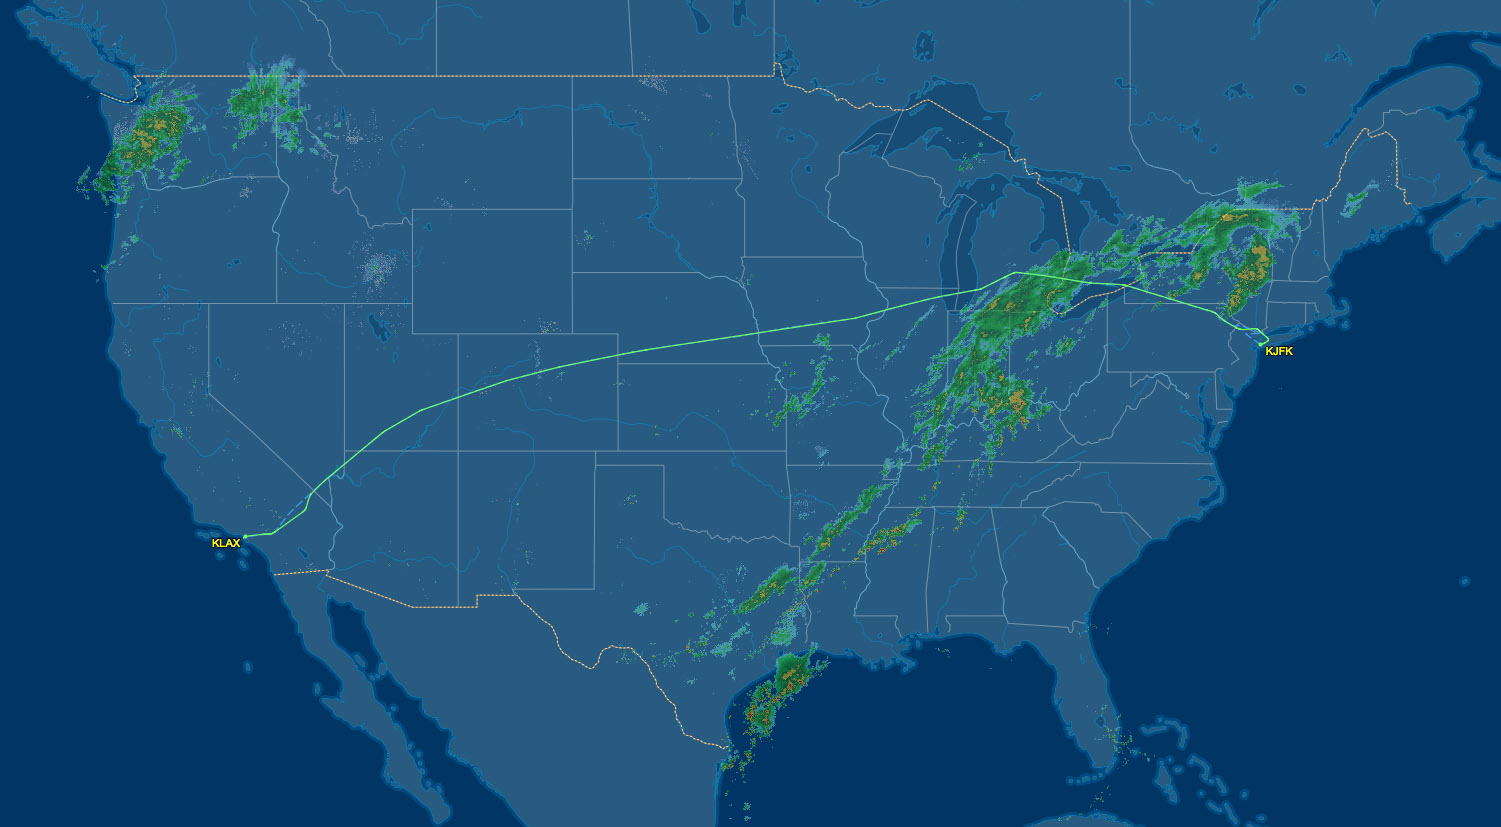 JFK to LAX route map